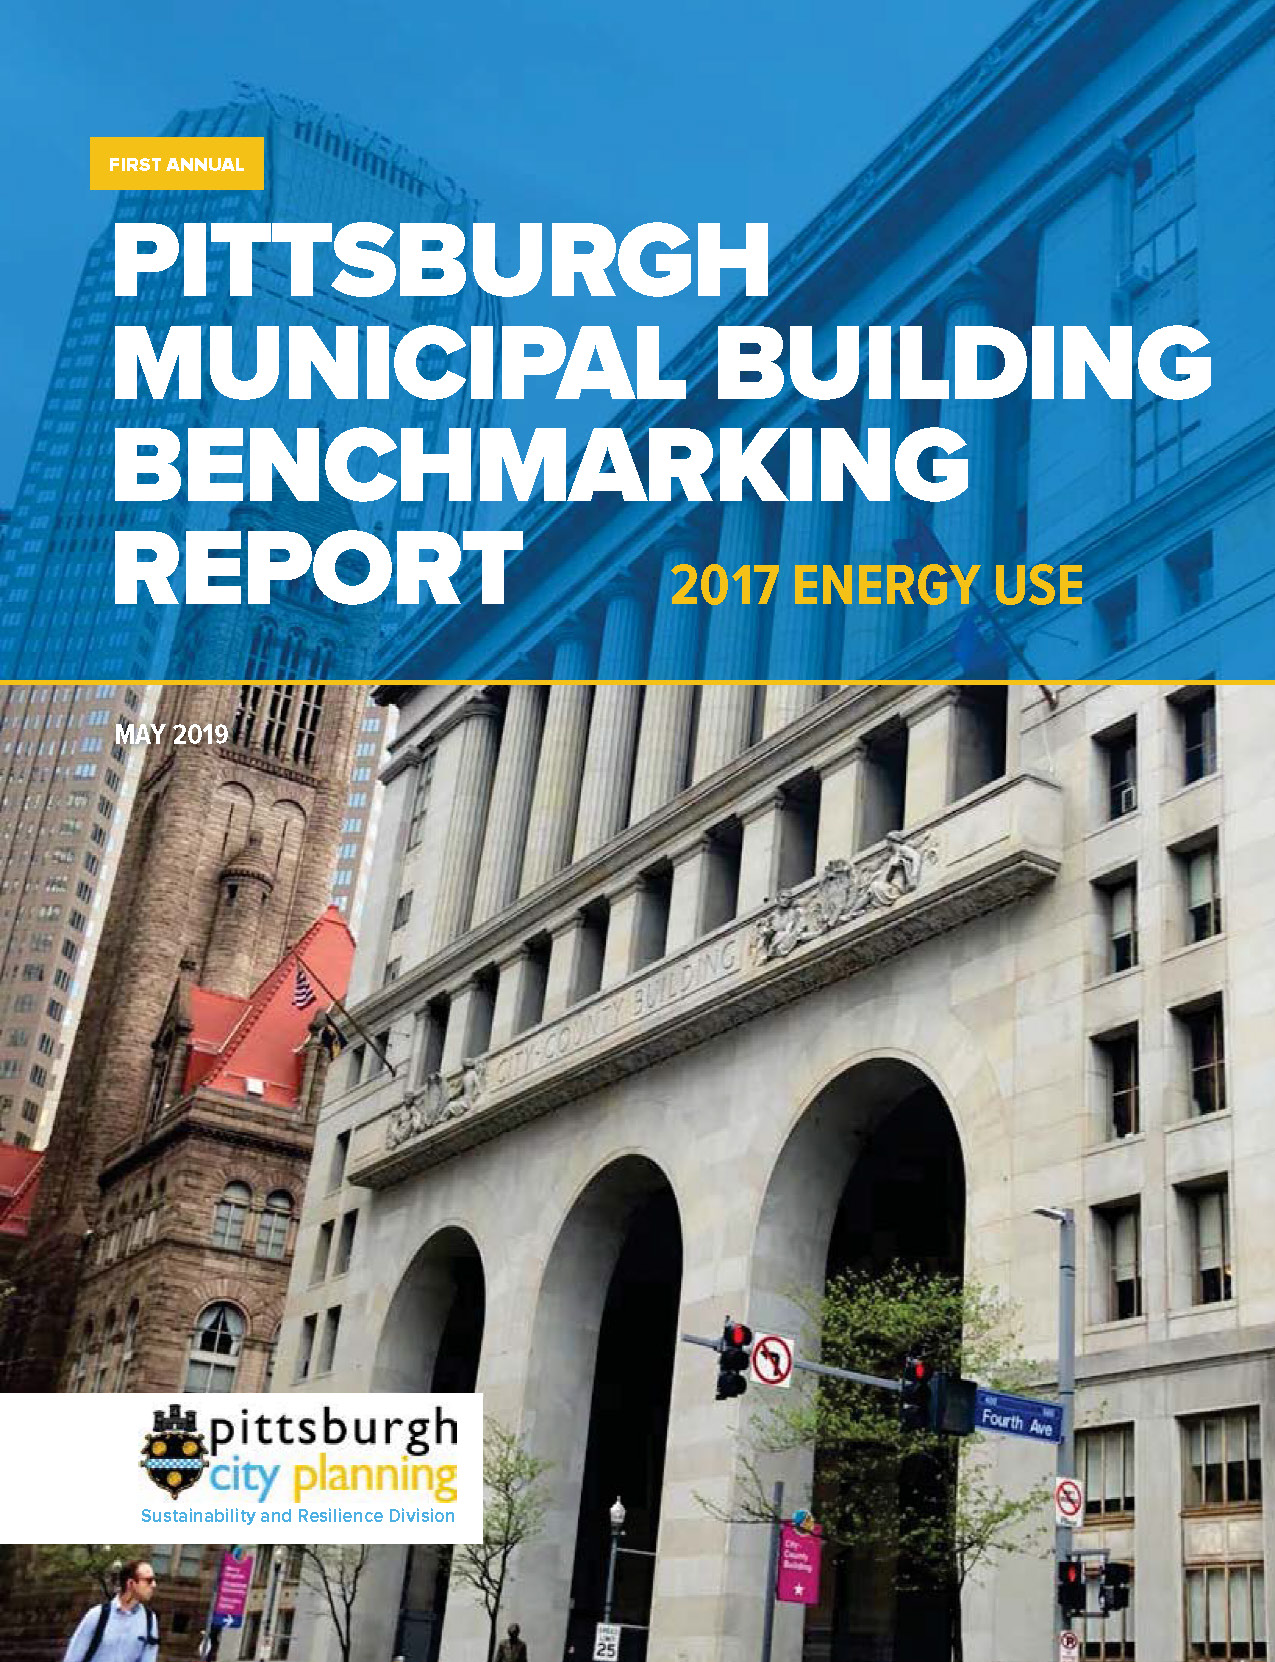 6381_pgh-benchmarkingreport-r5-WEB_cover.jpg